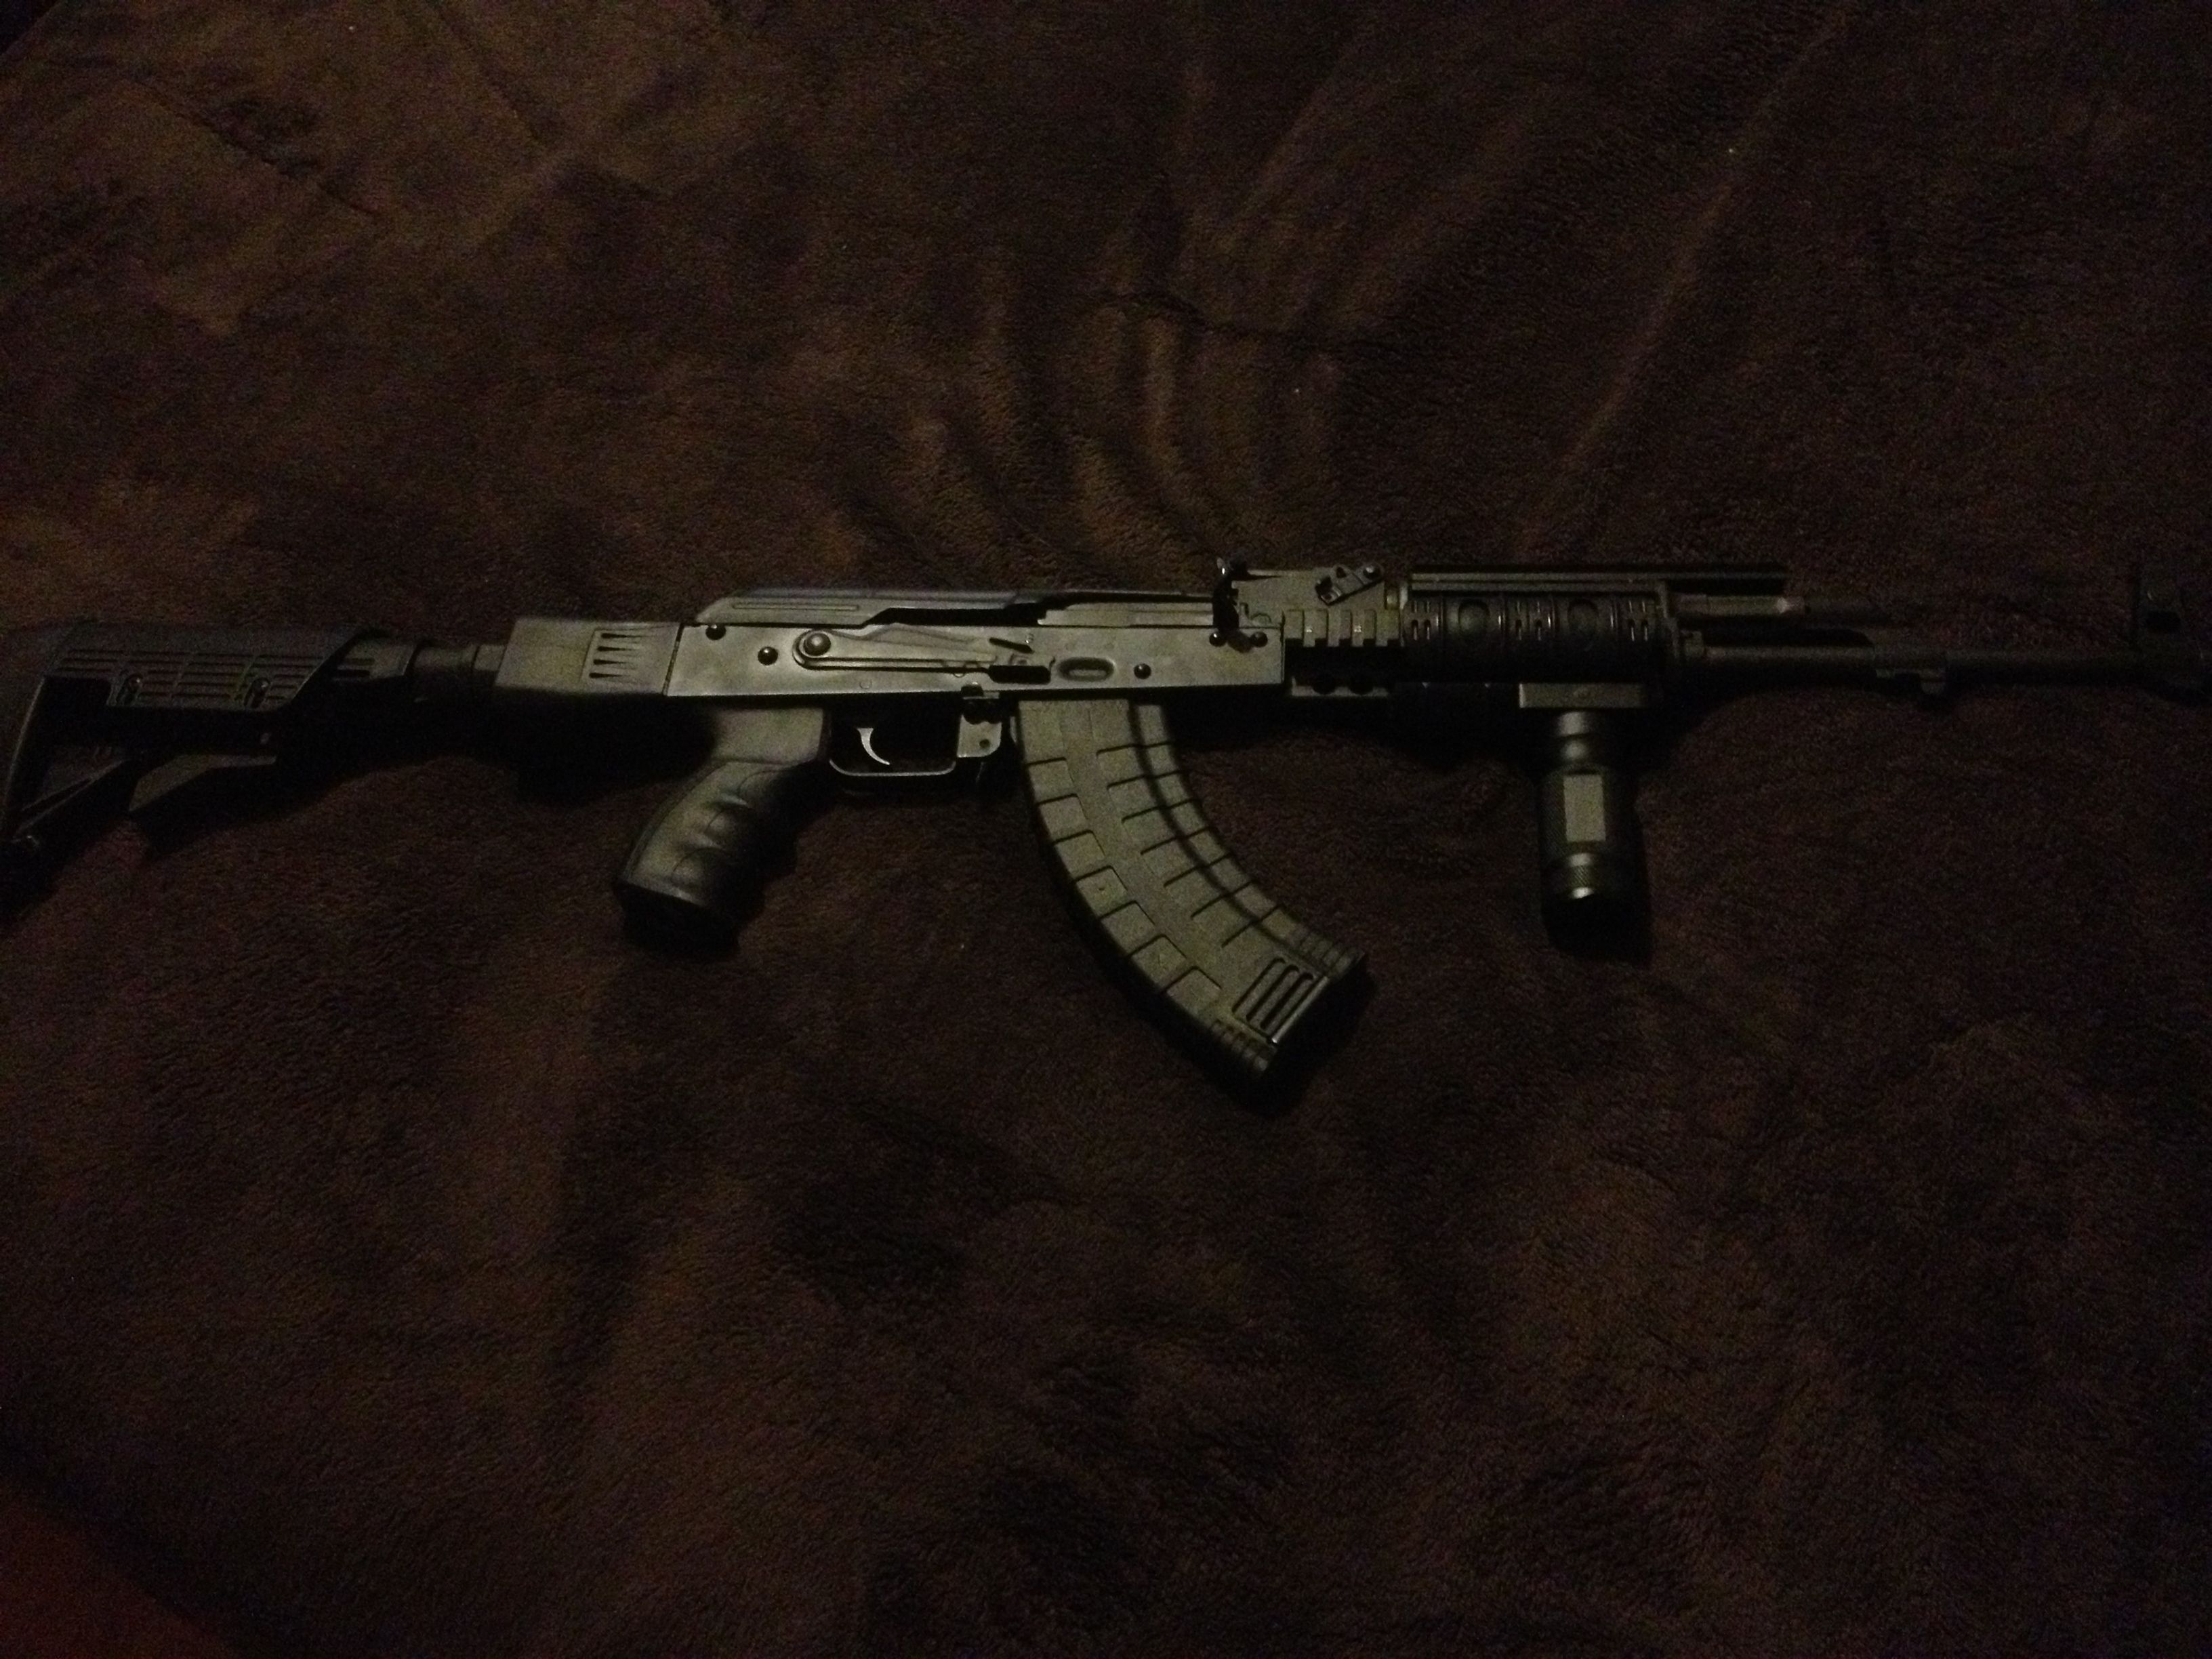 New all aluminum quad rails with forward assist grip added to the AK-47 today